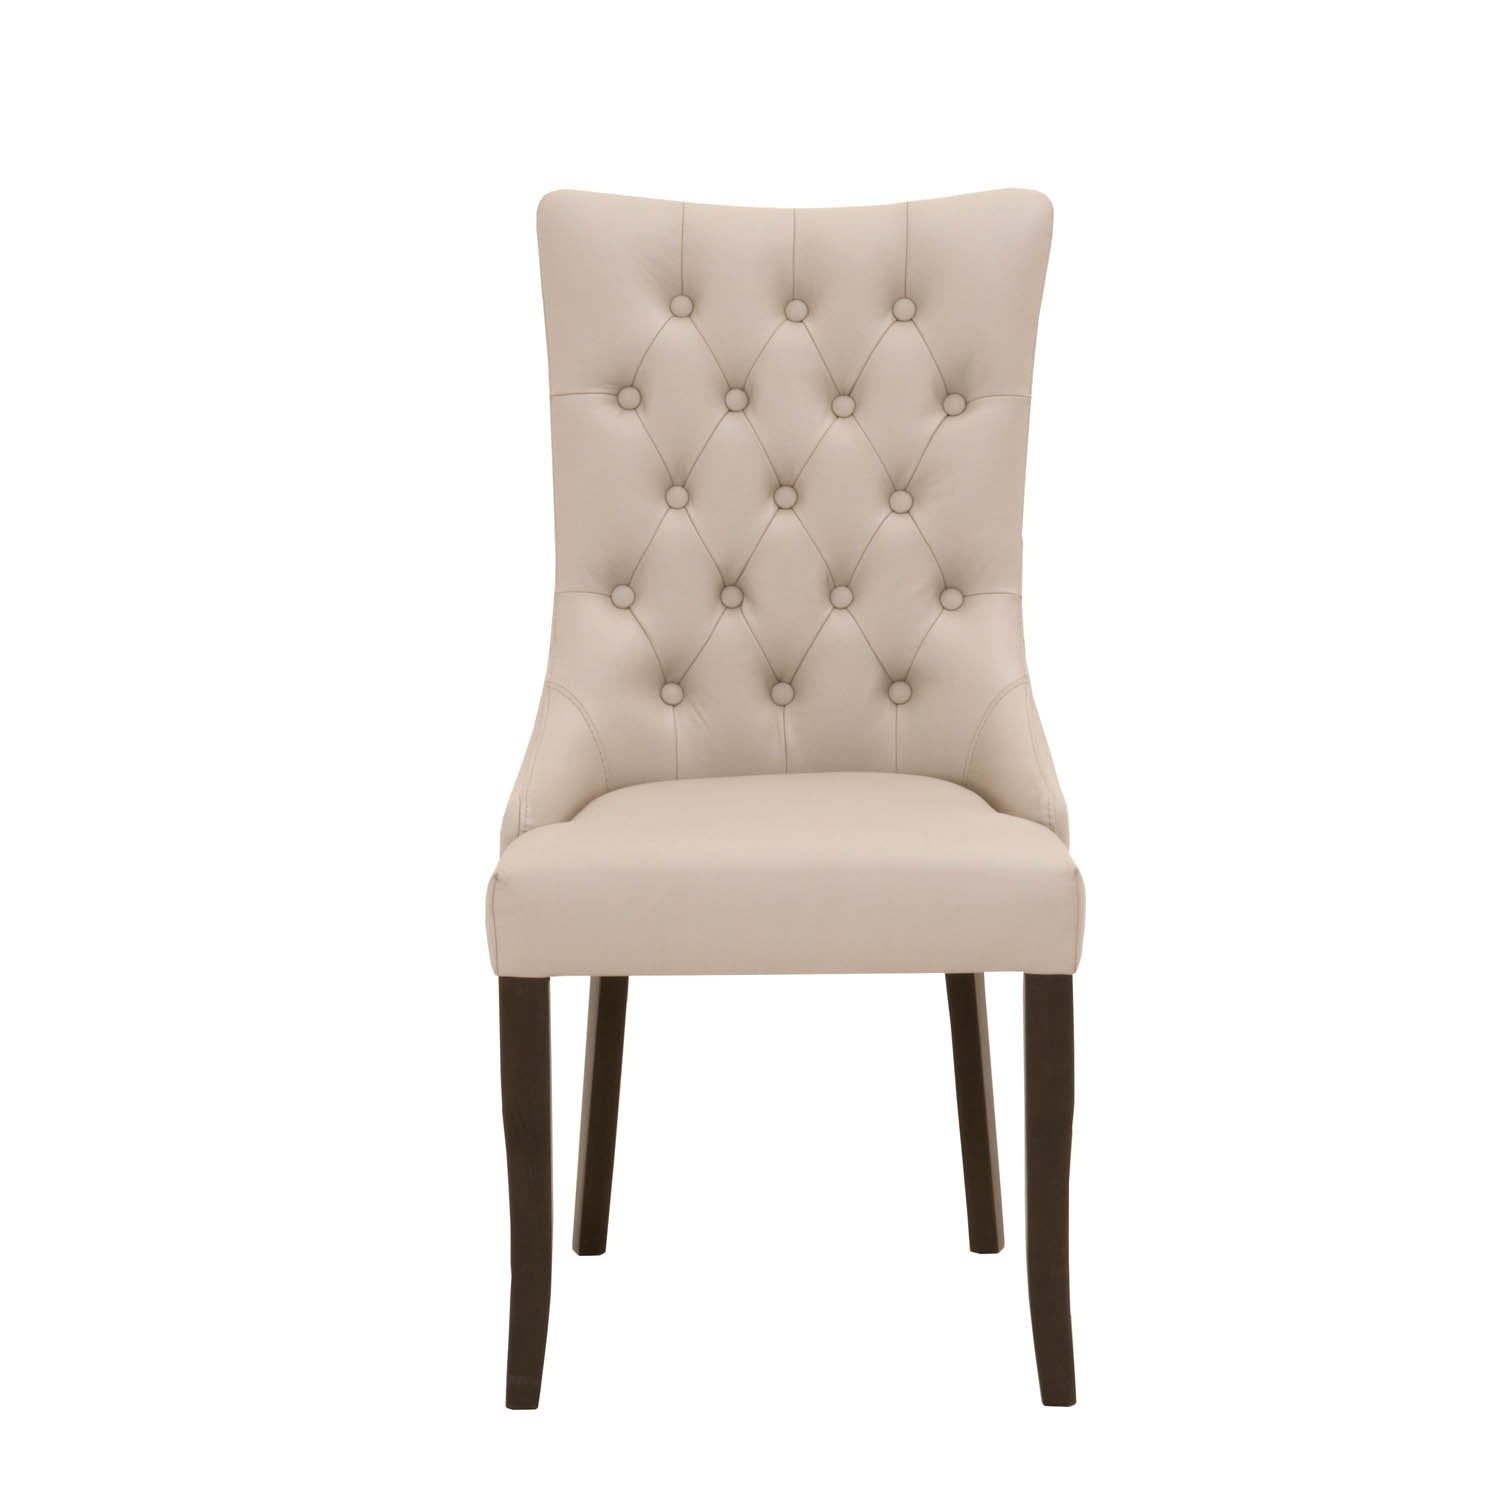 Amelia Dining Chair (Set of 2) in Baltic Mist Top Grain Leather